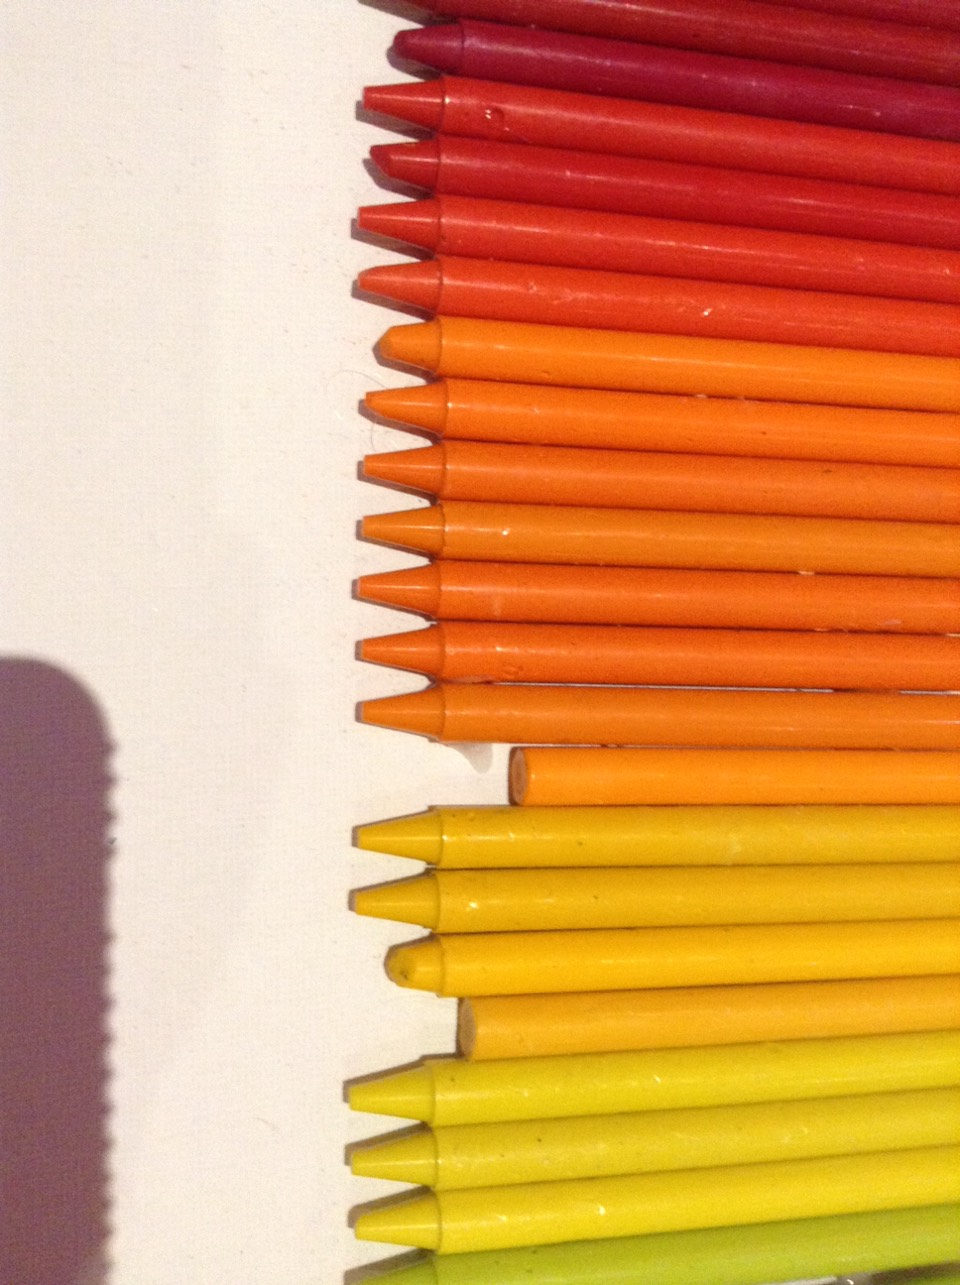 1) organise crayons into the order you want. I did rainbow.